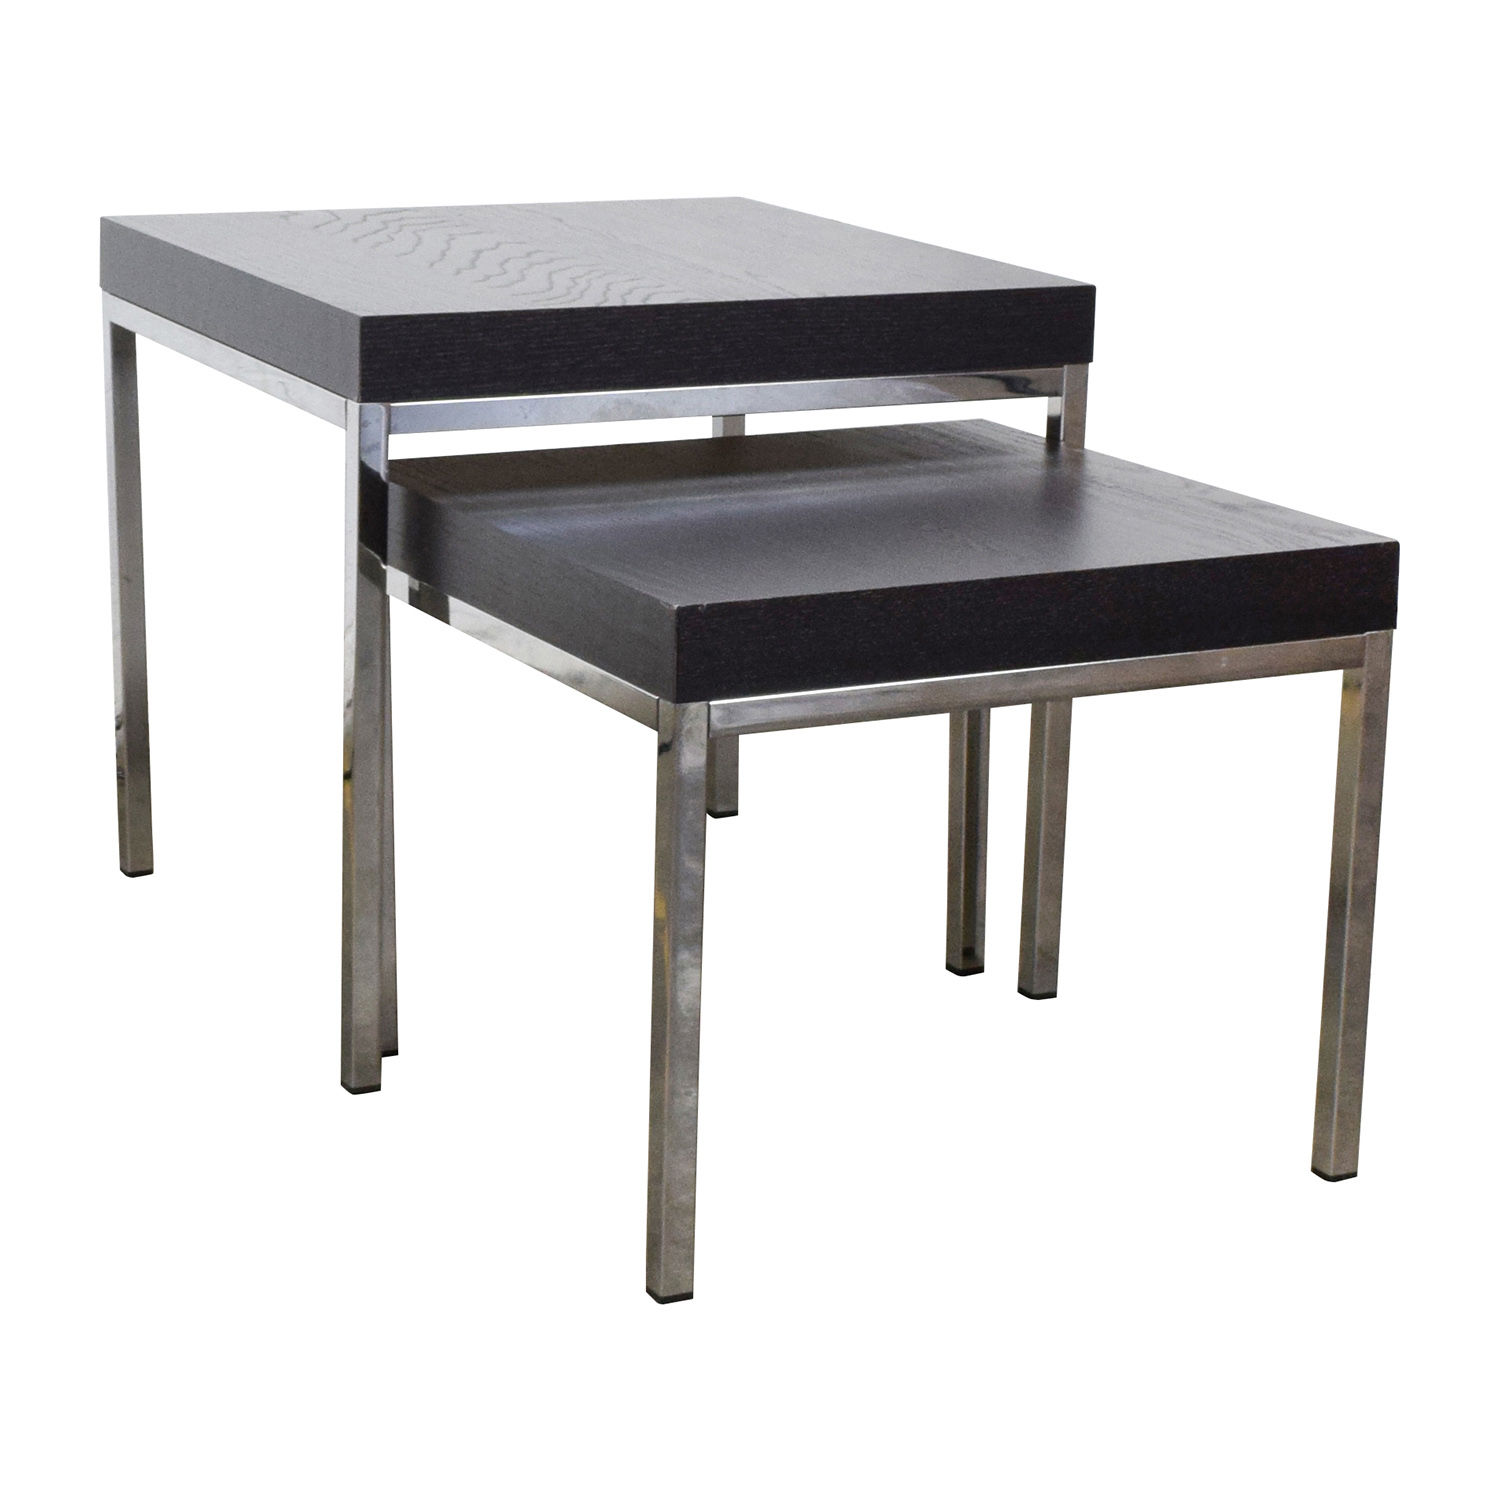 buy ikea klubbo black and chrome nesting tables ikea end tables - End Tables Ikea